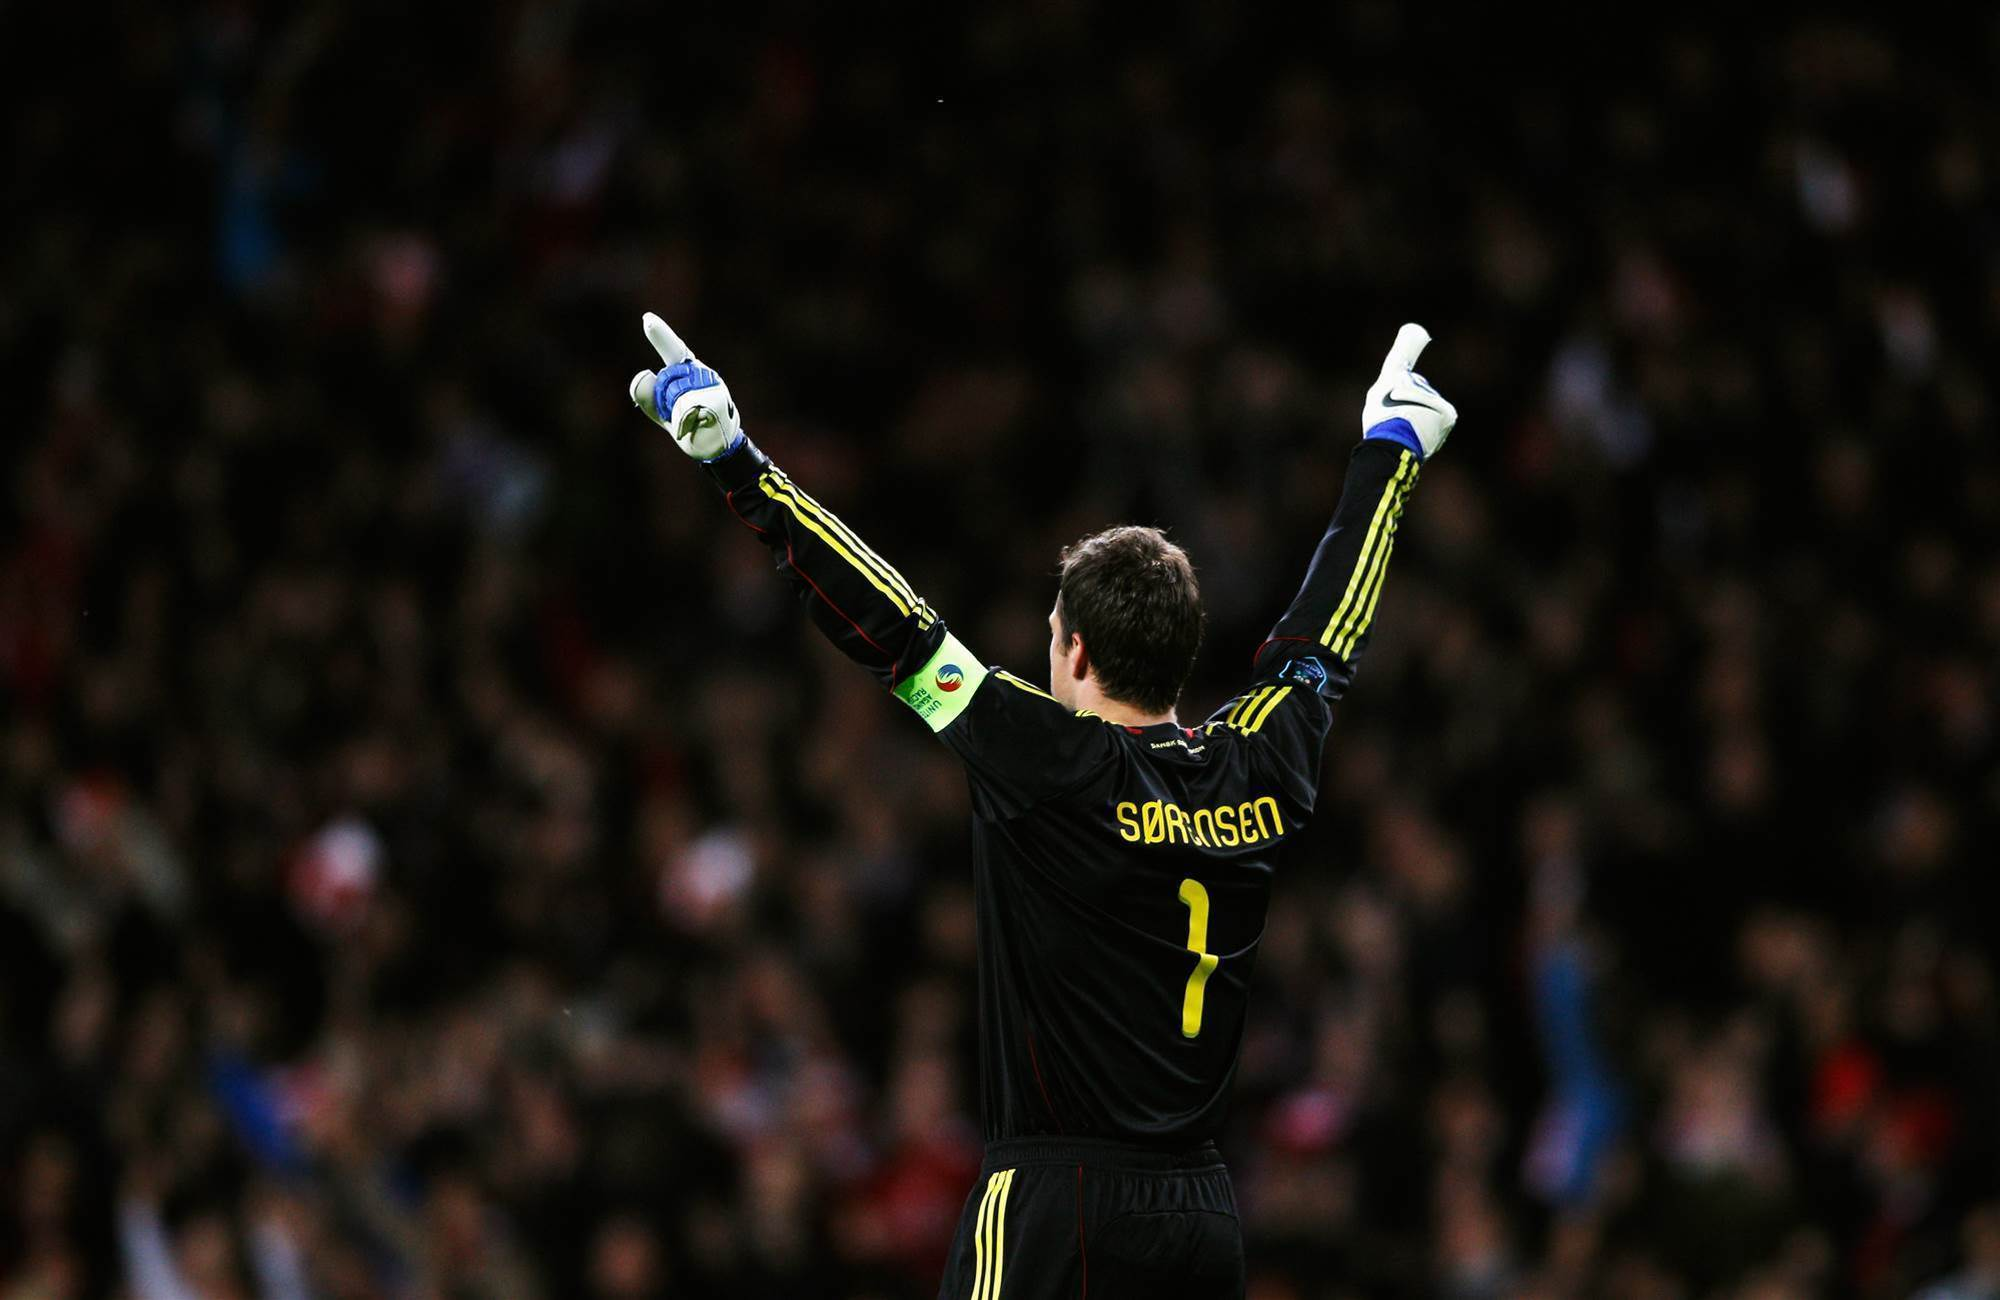 Thomas Sorensen's career in pictures